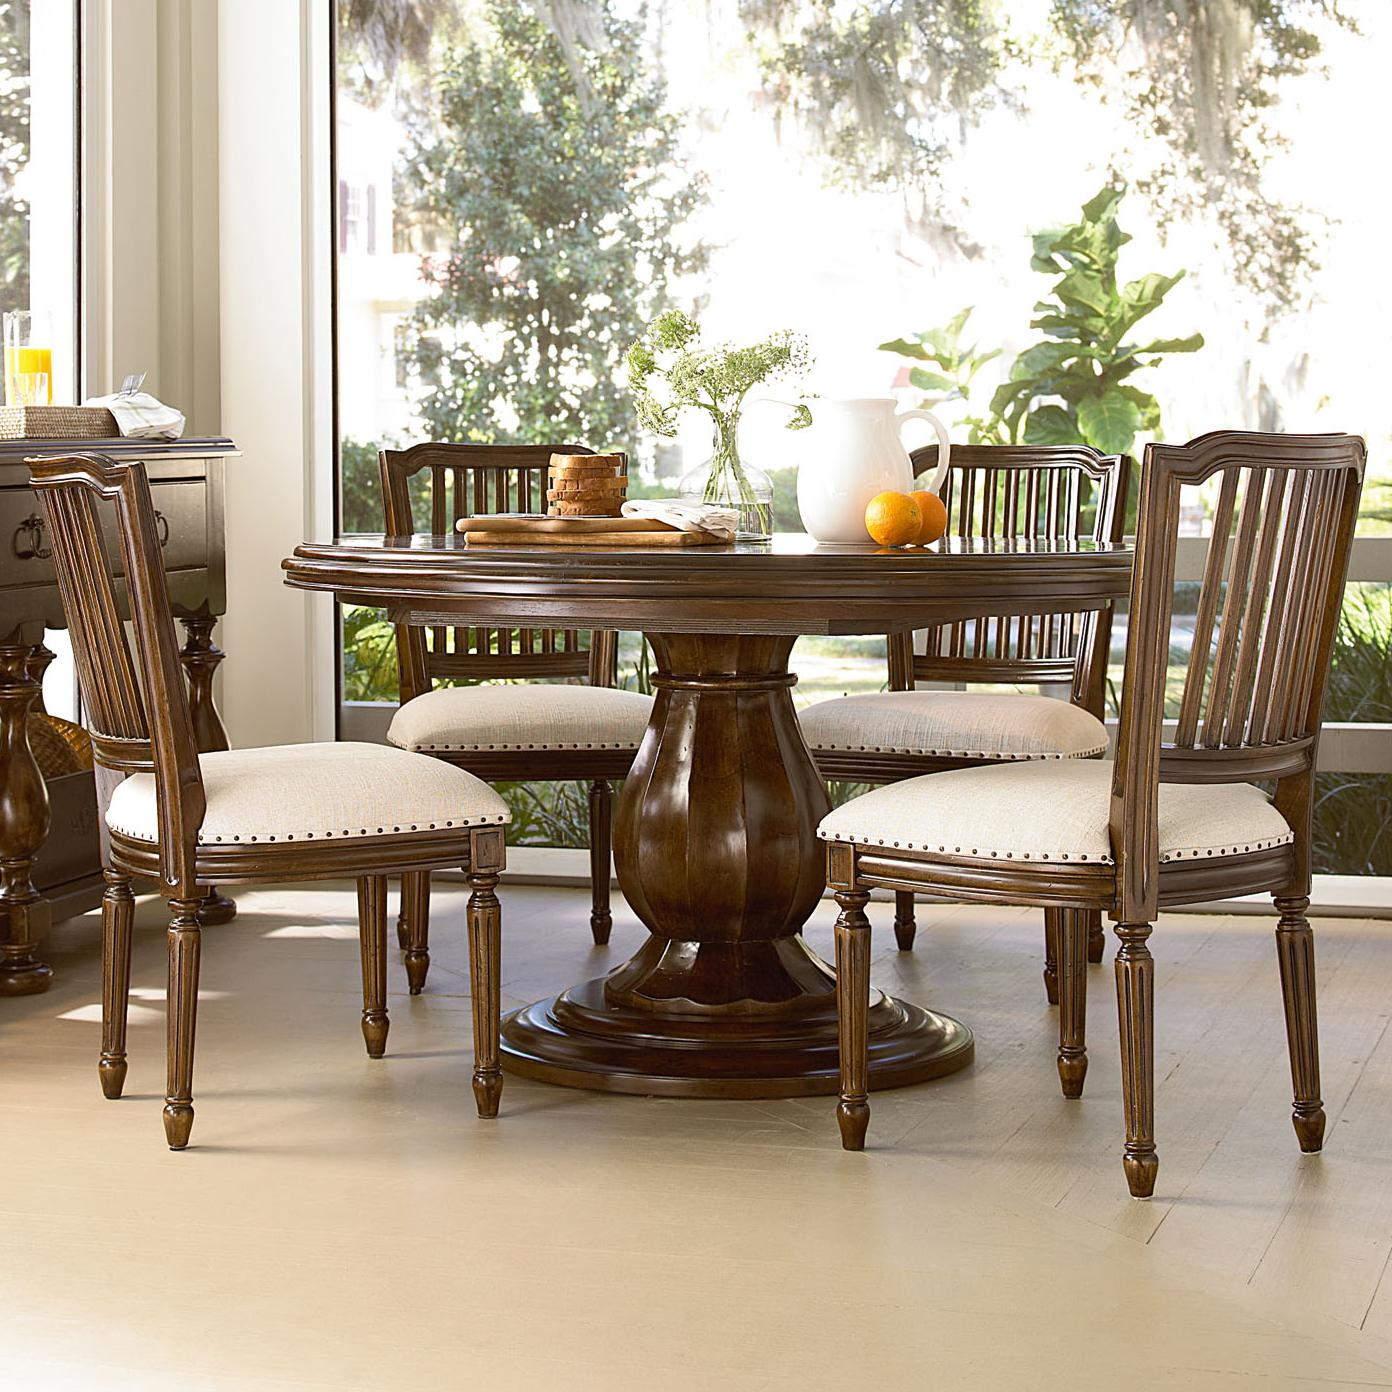 Image of: 36 round pedestal table